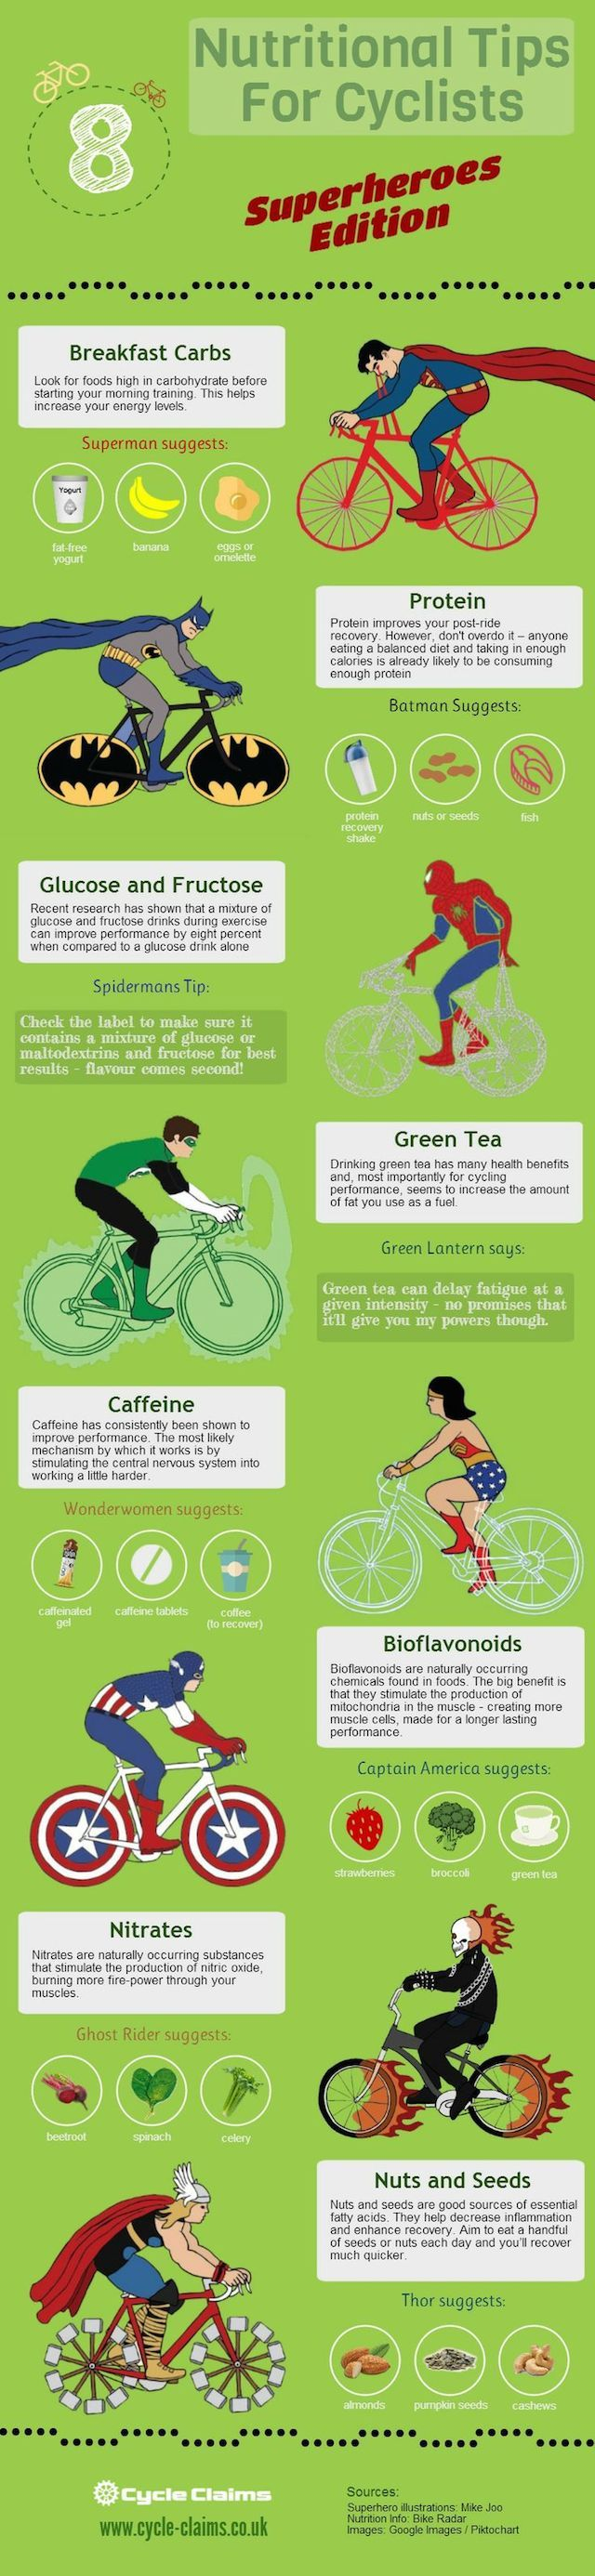 8 Nutritional Tips For Cyclist — RDFX